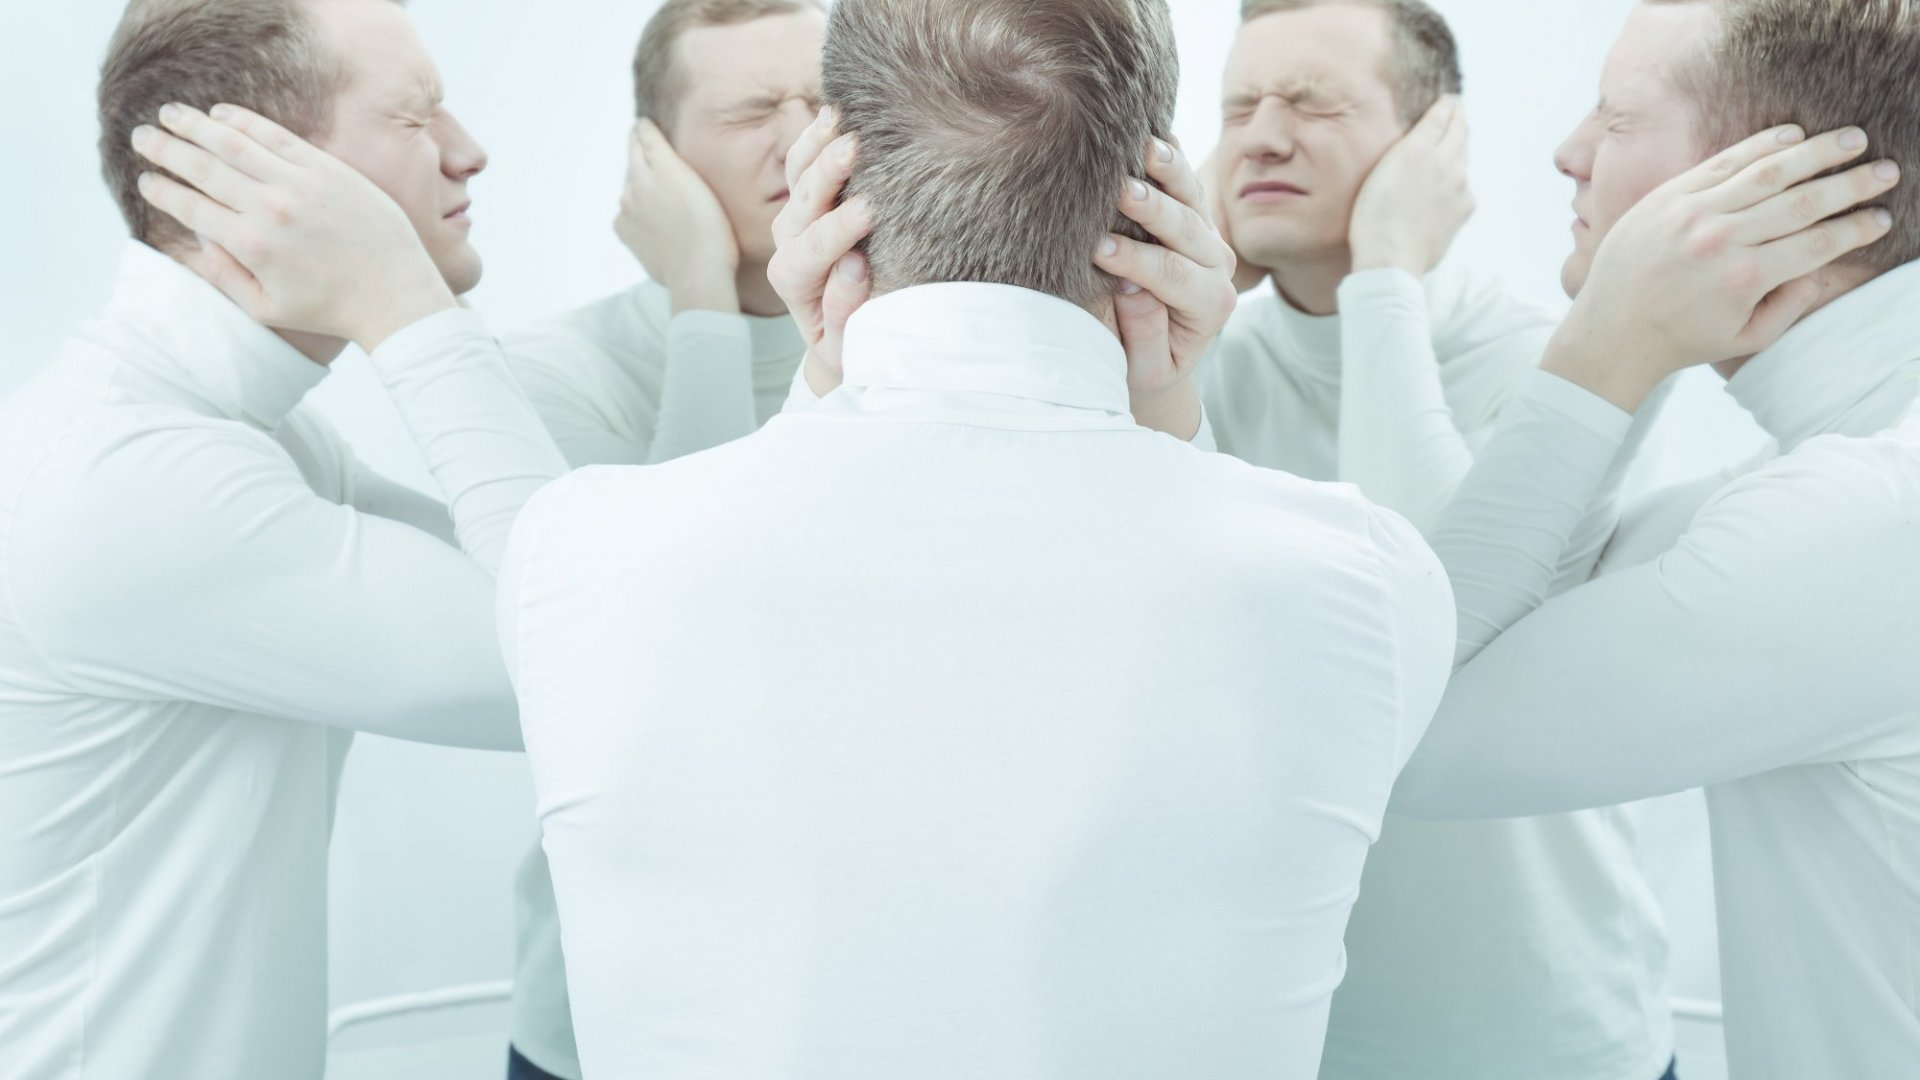 Study: 1 in 5 CEOs Are Psychopaths